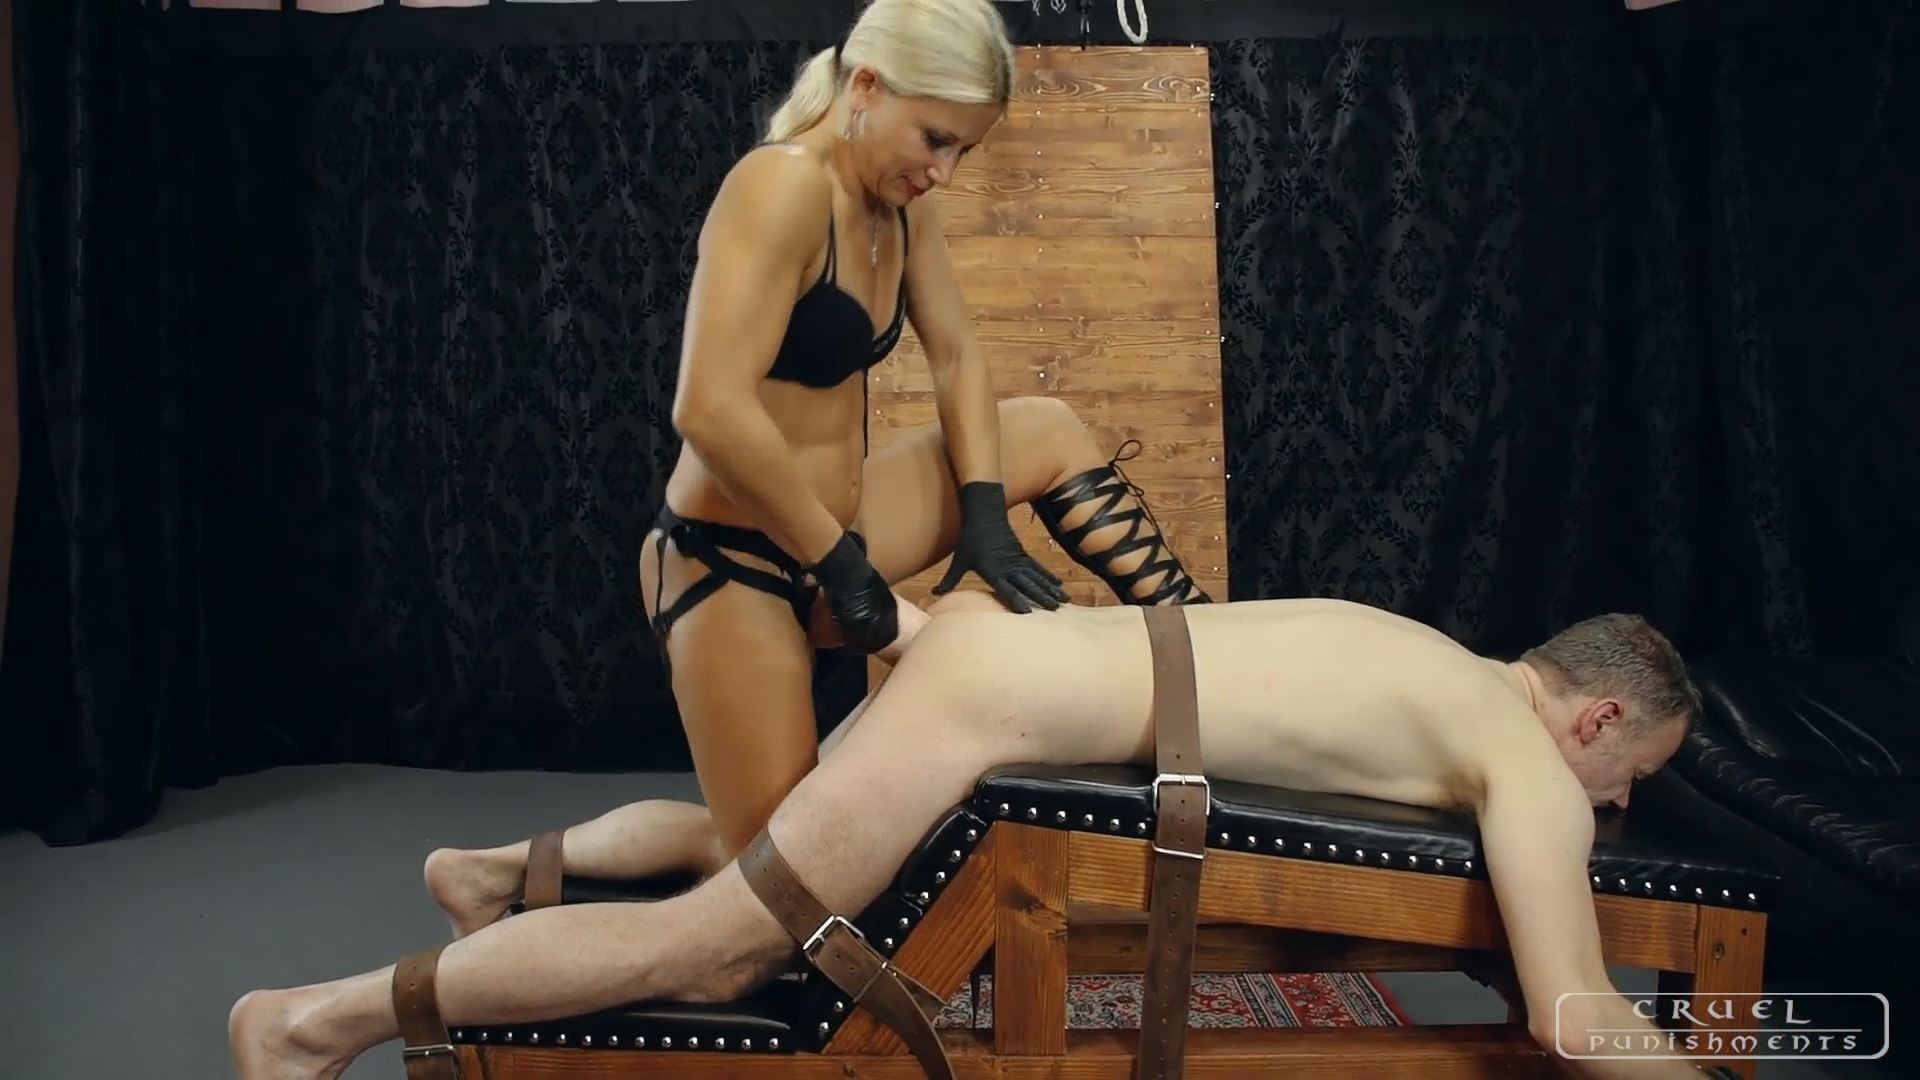 Mistress Zita In Scene: Nasty little bitch - CRUEL PUNISHMENTS - SEVERE FEMDOM - FULL HD/1080p/MP4